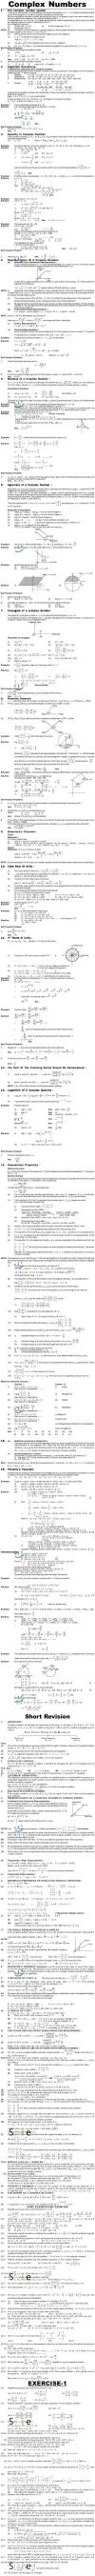 Maths Study Material - Chapter 1